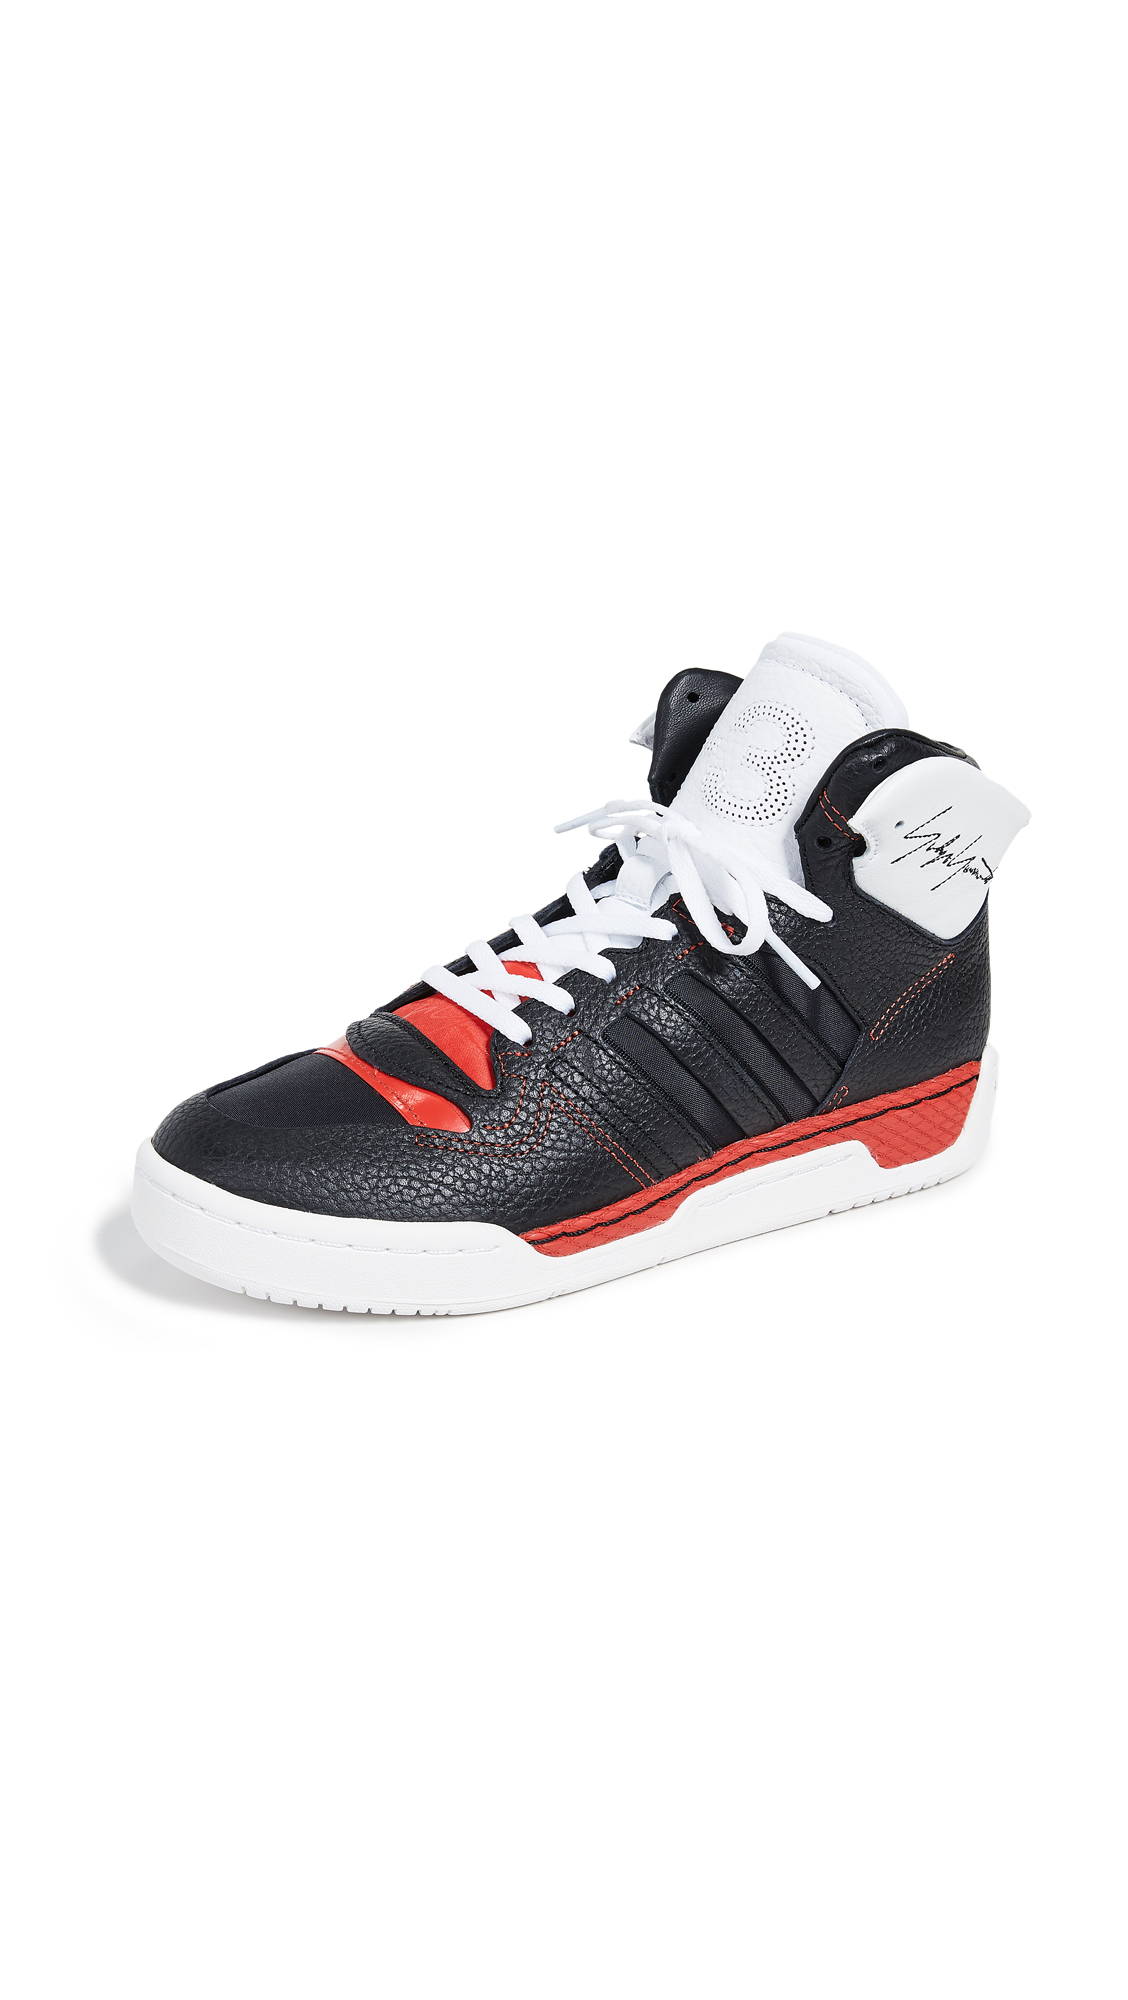 Y-3 Y-3 Hayworth Sneakers - Black Y-3/Black/Red